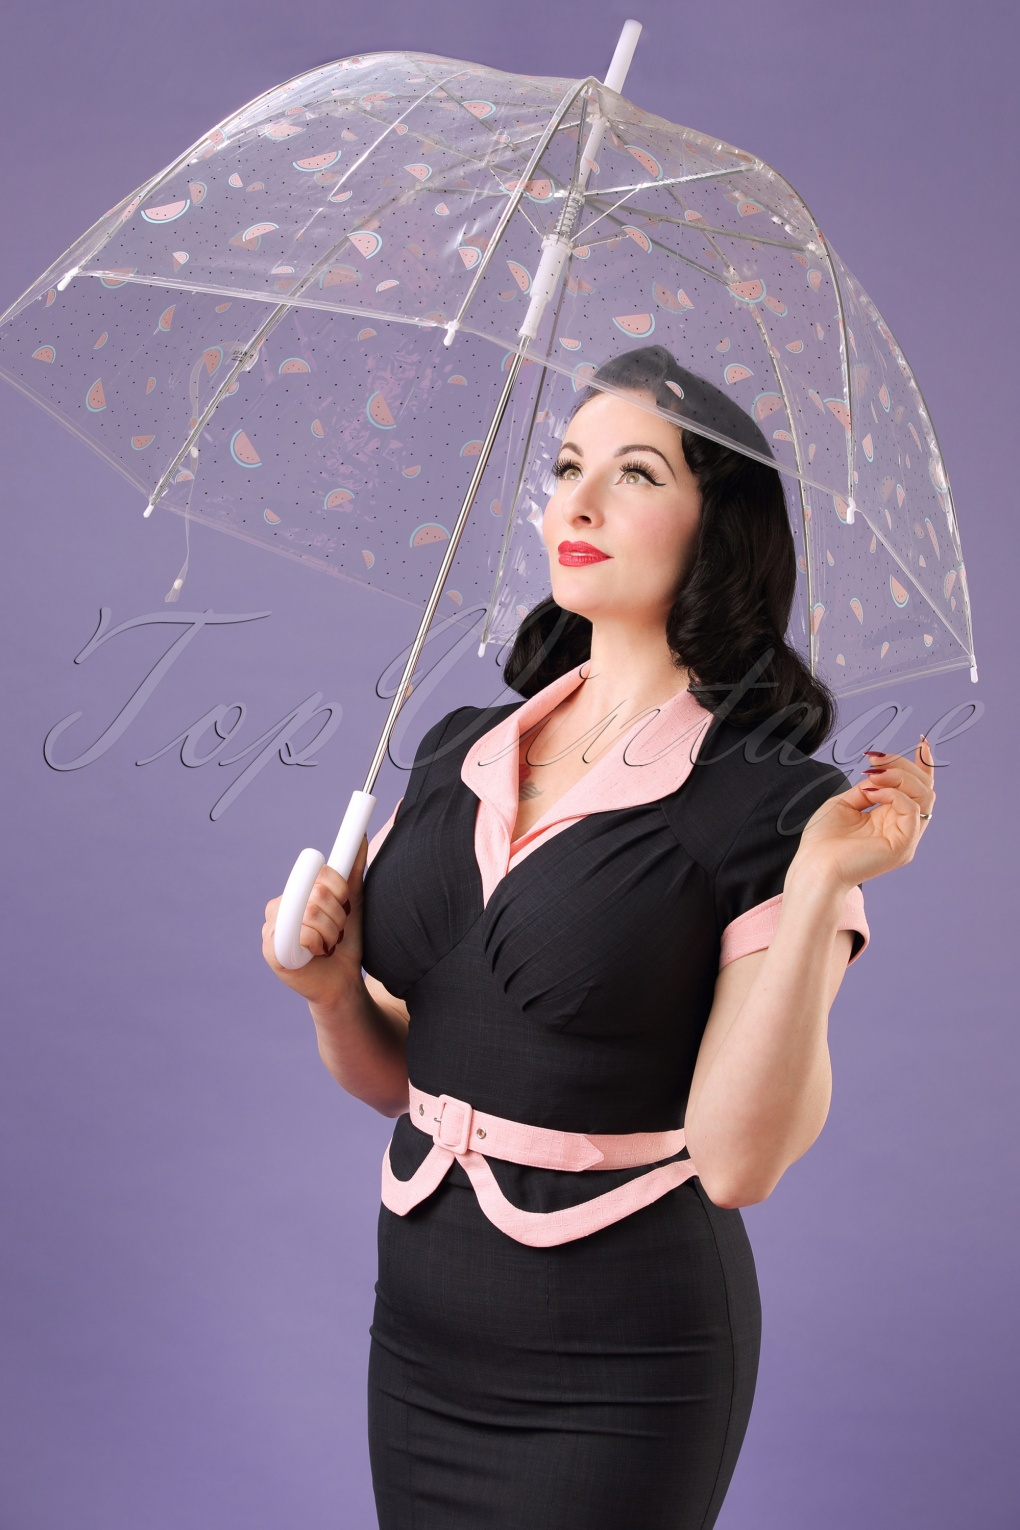 Vintage Style Parasols and Umbrellas 60s My Sweet Watermelon Transparent Dome Umbrella in White £15.70 AT vintagedancer.com